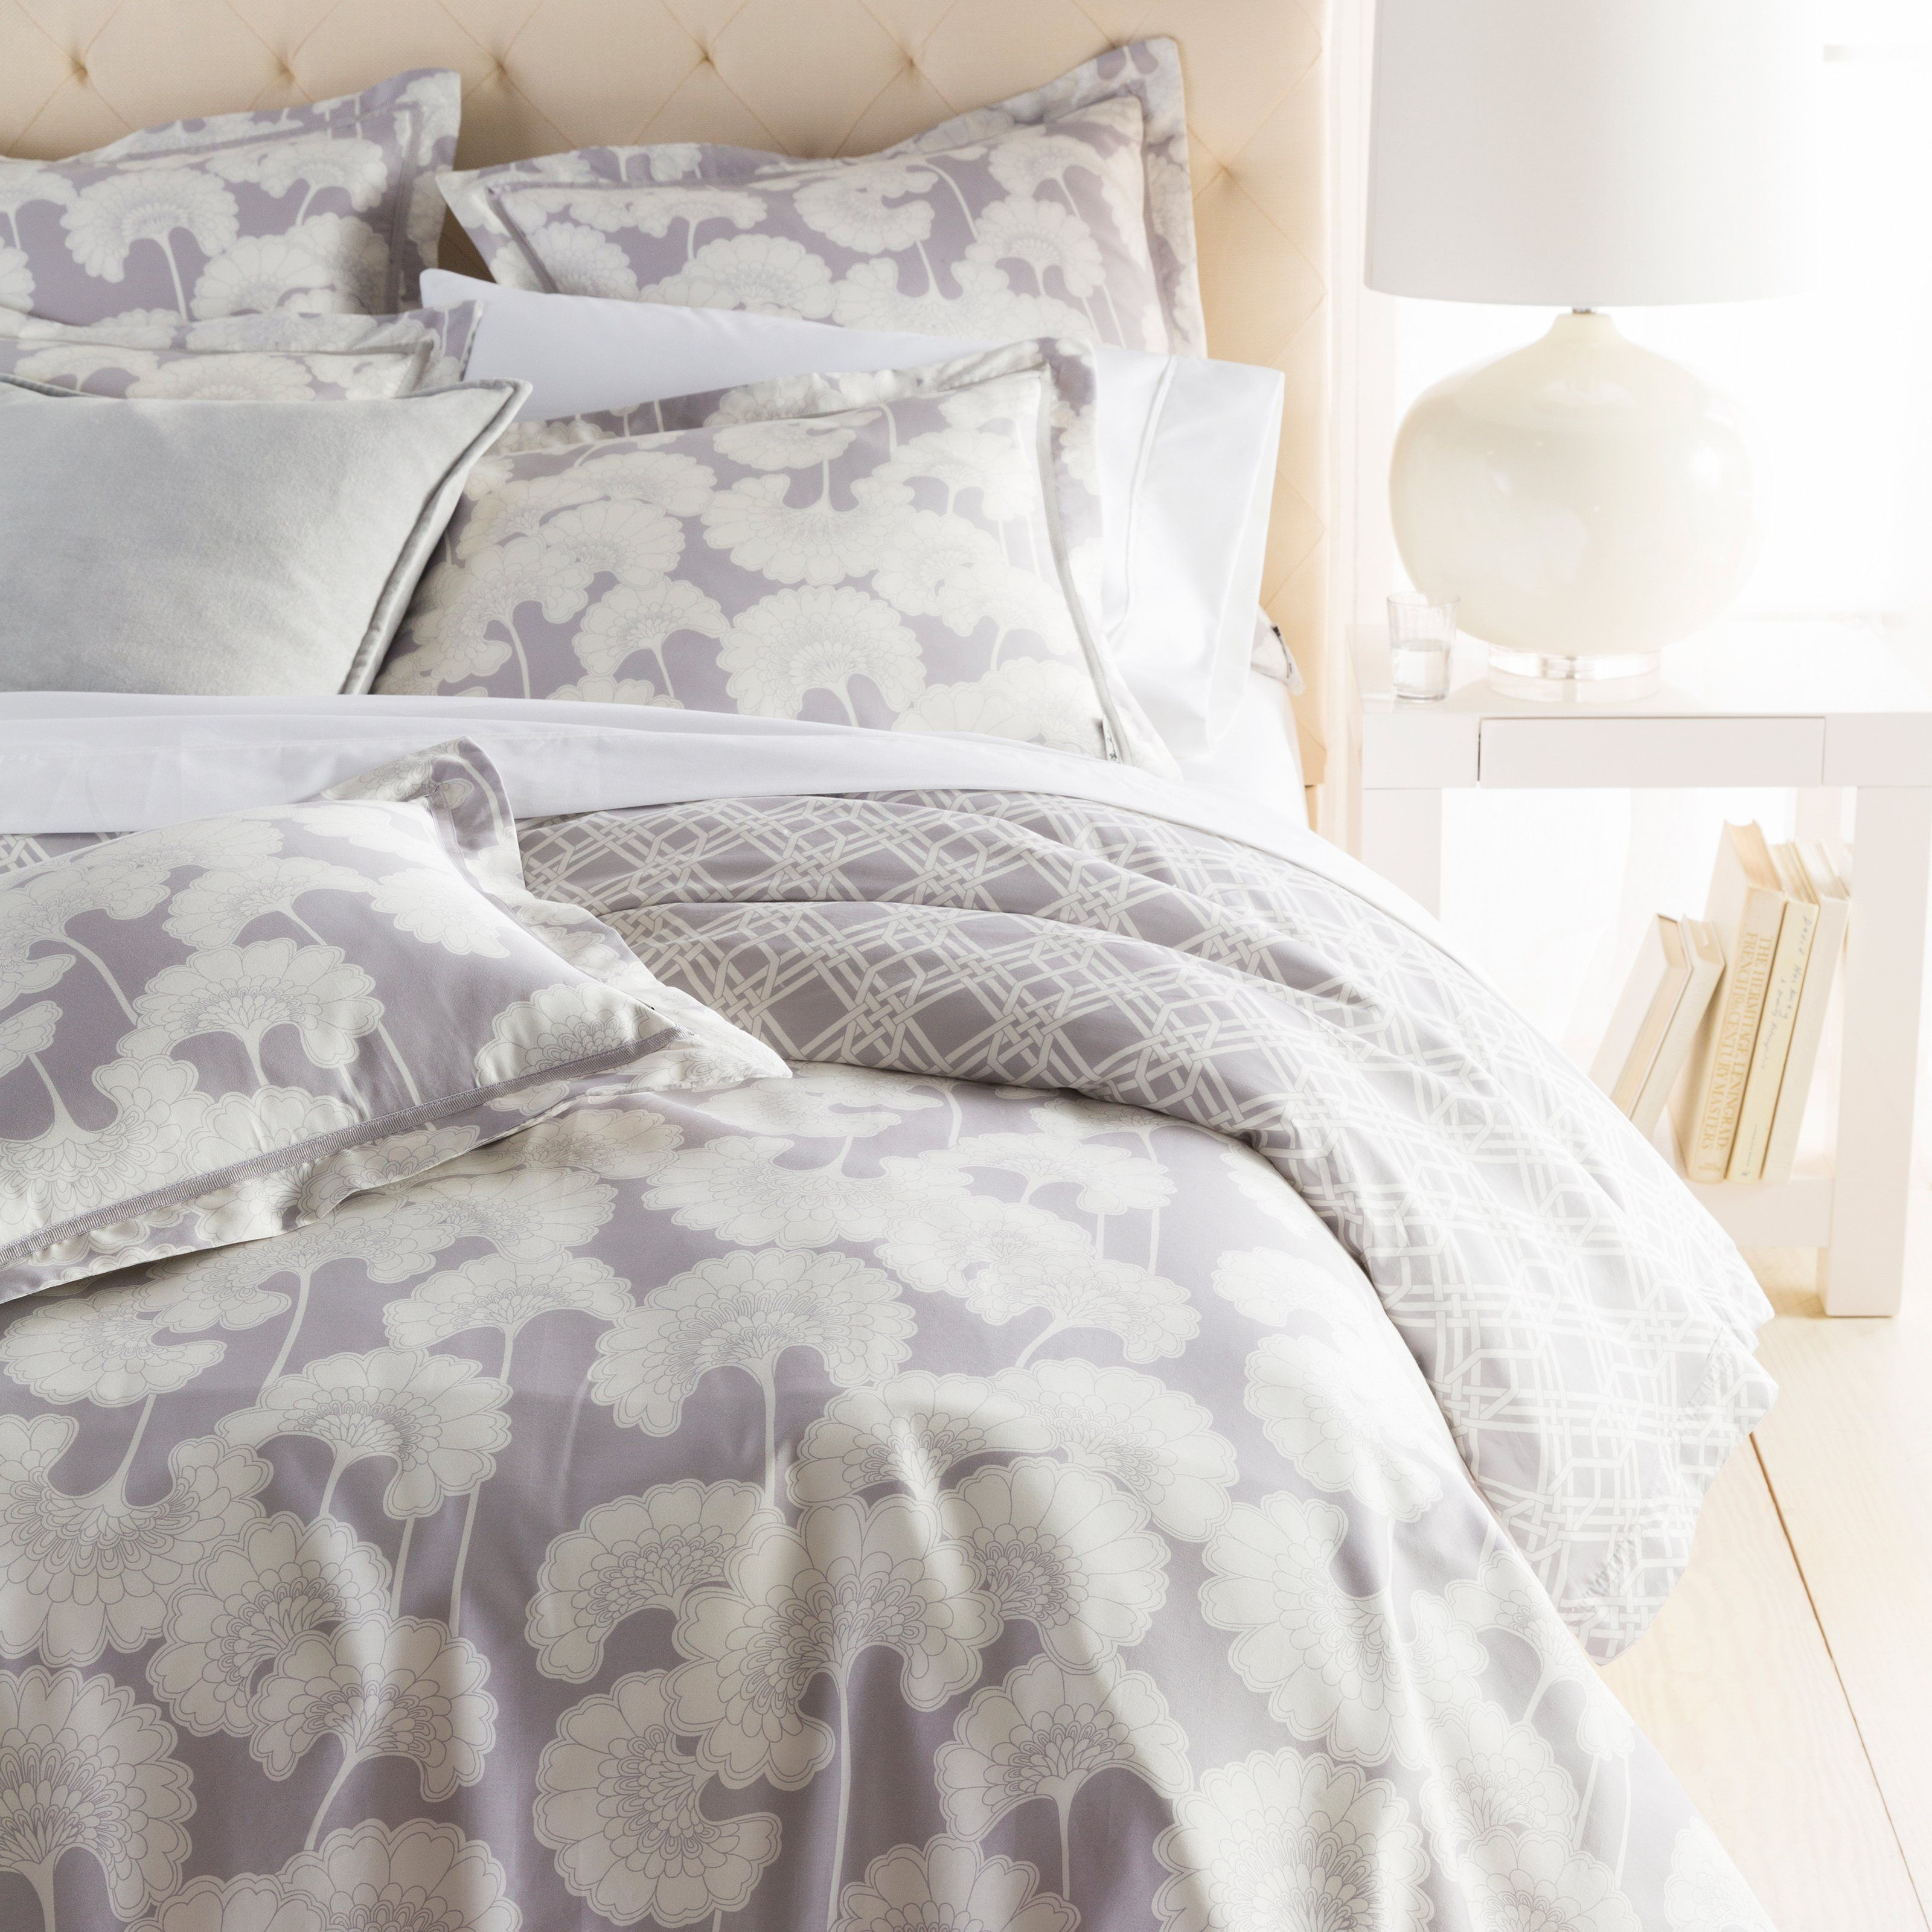 taupe quilt black beddingsimple of table white and grey toile luxury sets set lamp duvet cover wall birds full bedside flowers size picture single ideas gray bedding sensational stripe night